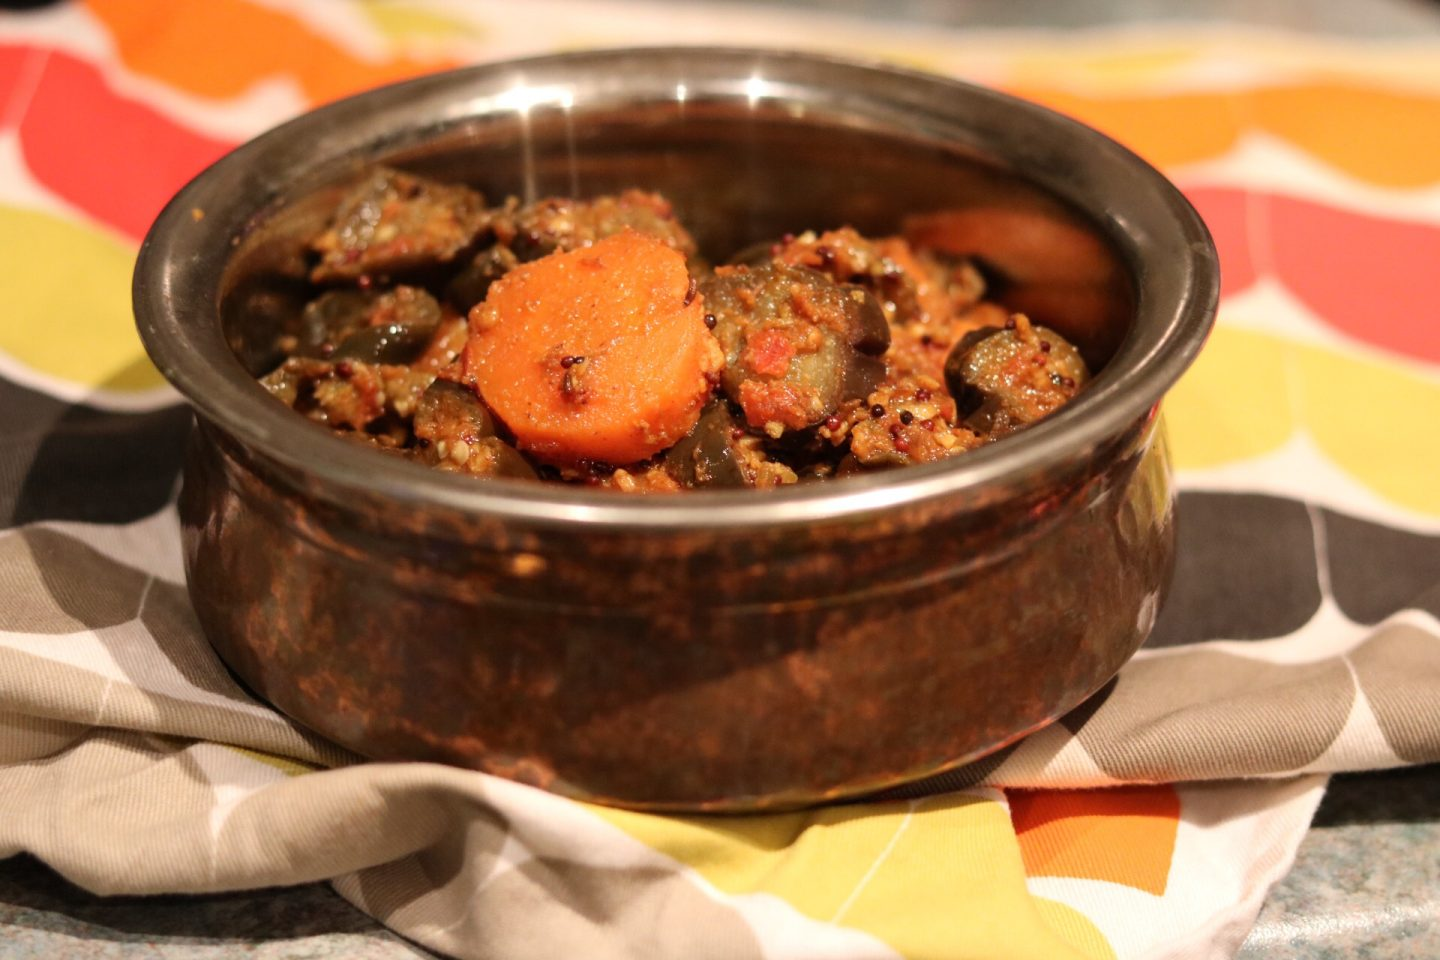 Carrot and Aubergine sabzi/ Gajar Ringra Shaak